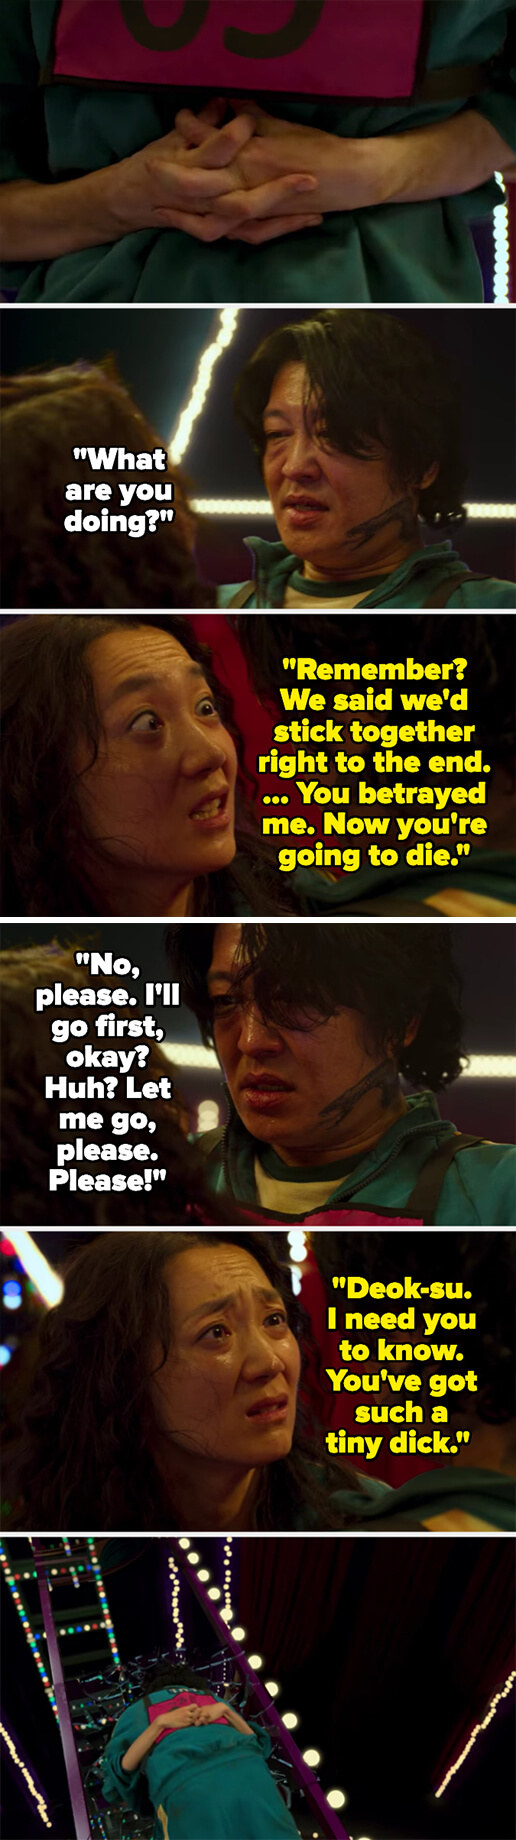 Mi-nyeo grabsDeok-su's waist and refuses to let go, saying they promised to stick together until the end, and she said she'd kill him for betraying her - she then tells him he has a tiny dick and falls back, and they both die